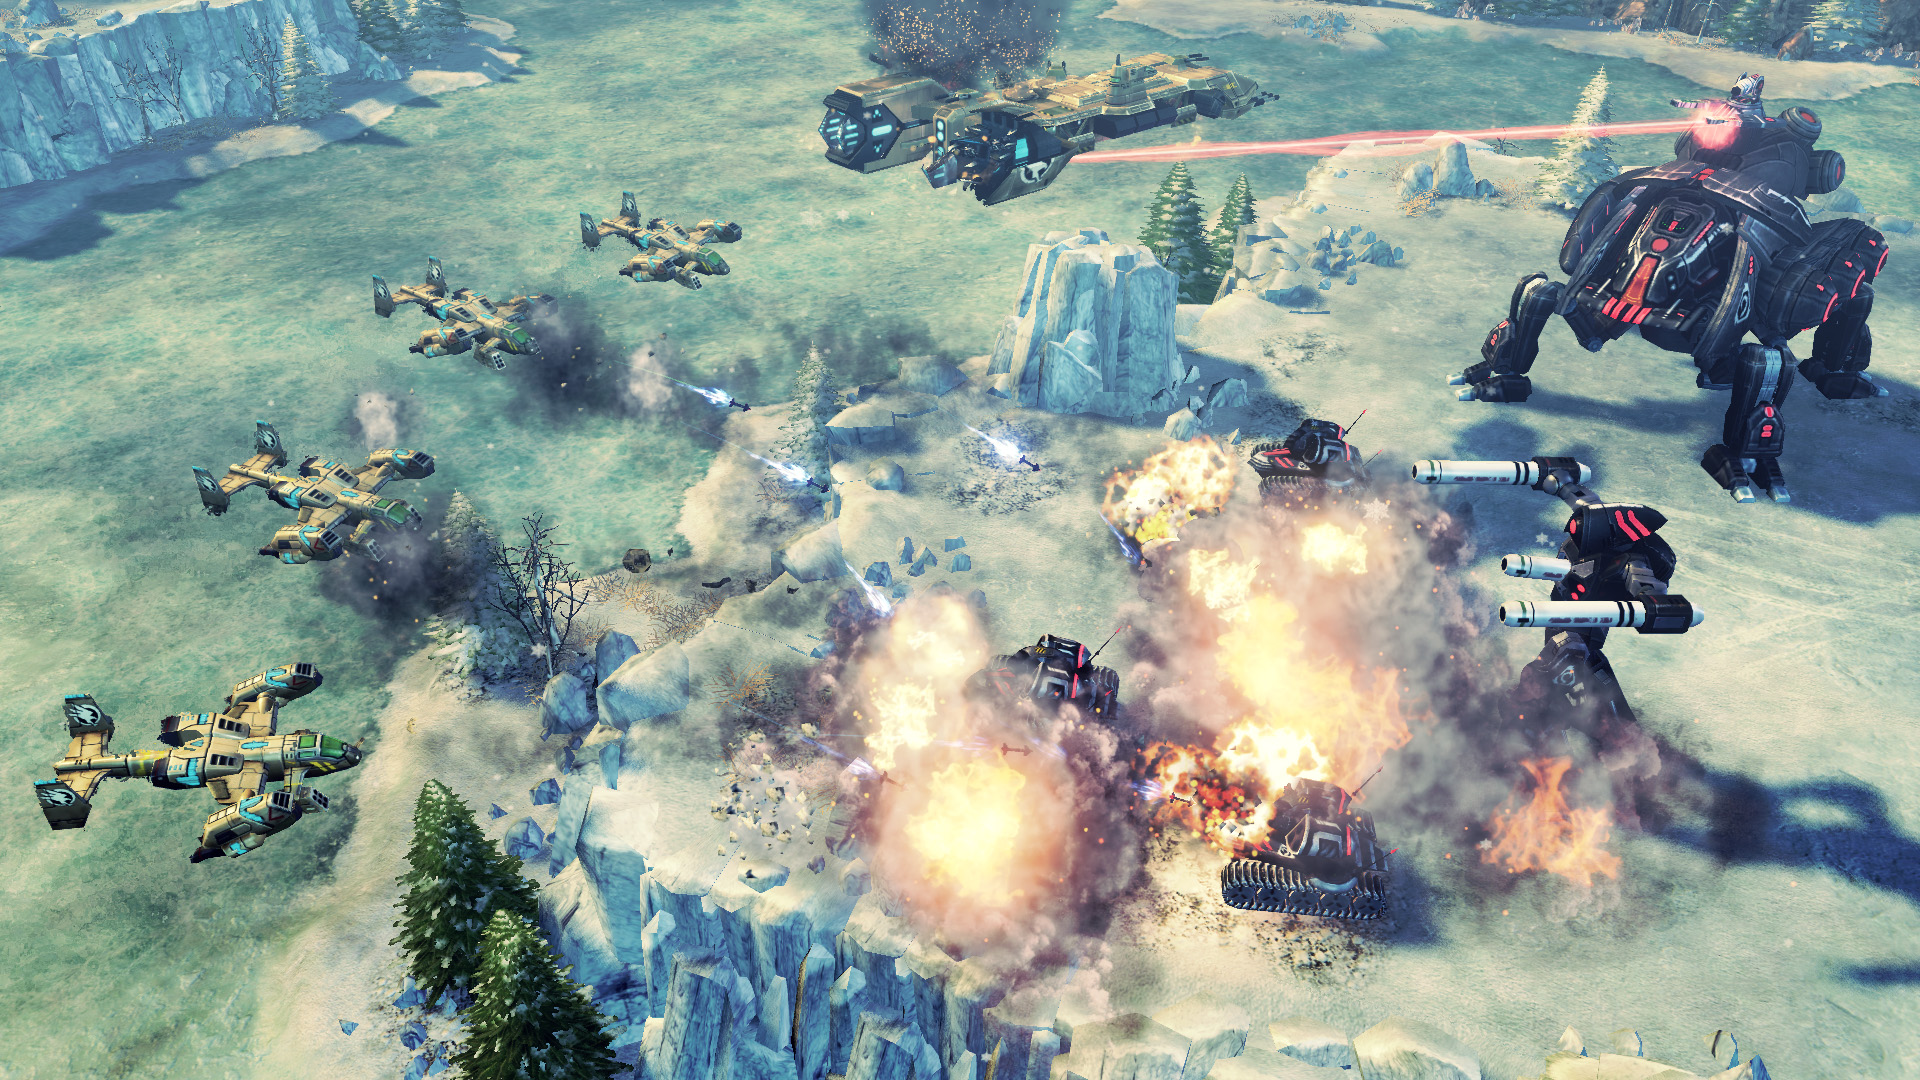 command and conquer 4 trainer download